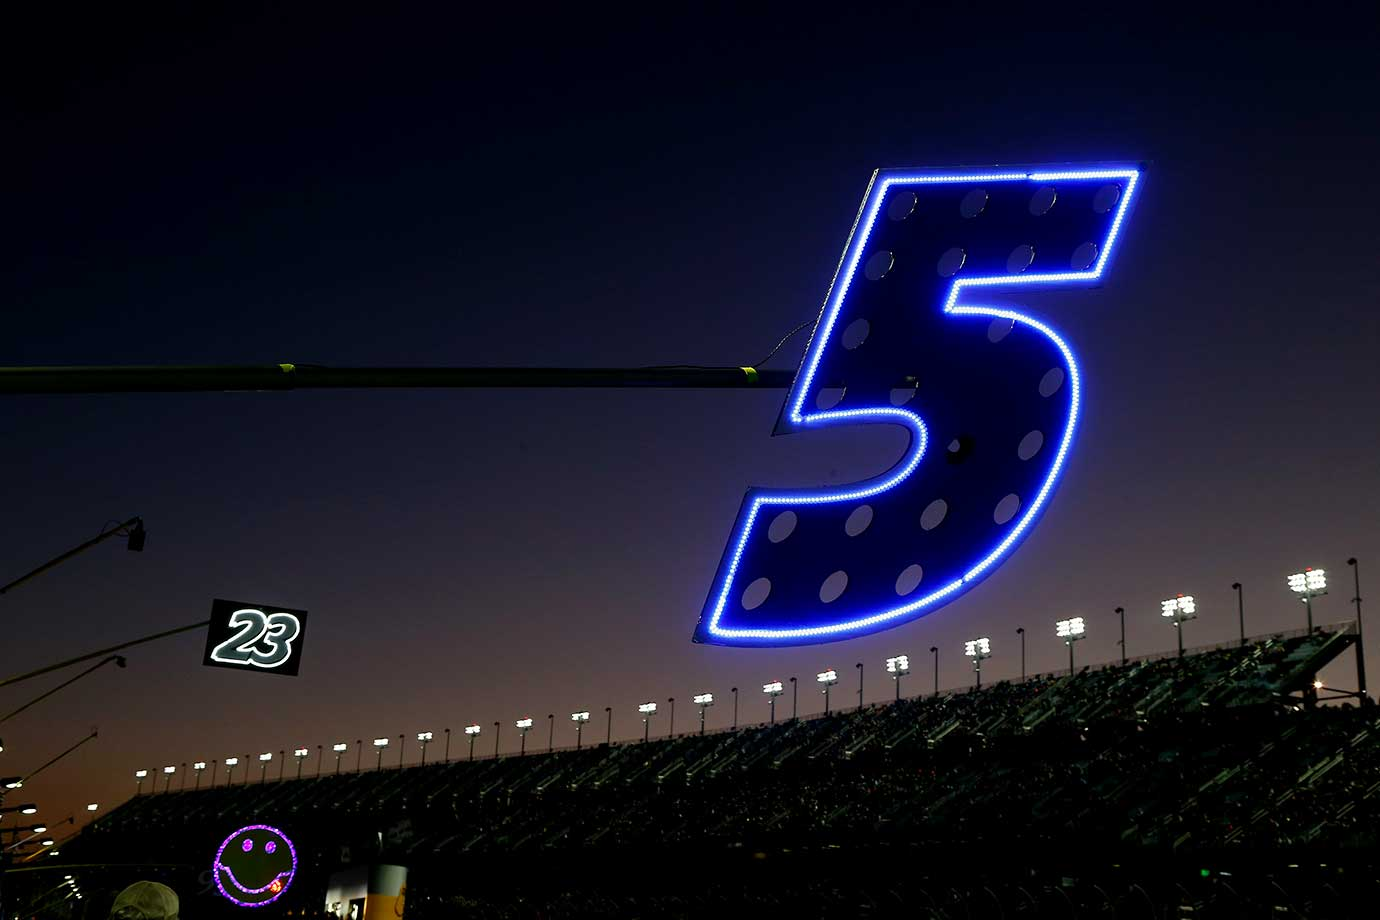 A detailed view of the pit box sign of Kasey Kahne during Thursday night qualifying for Sunday's Daytona 500.